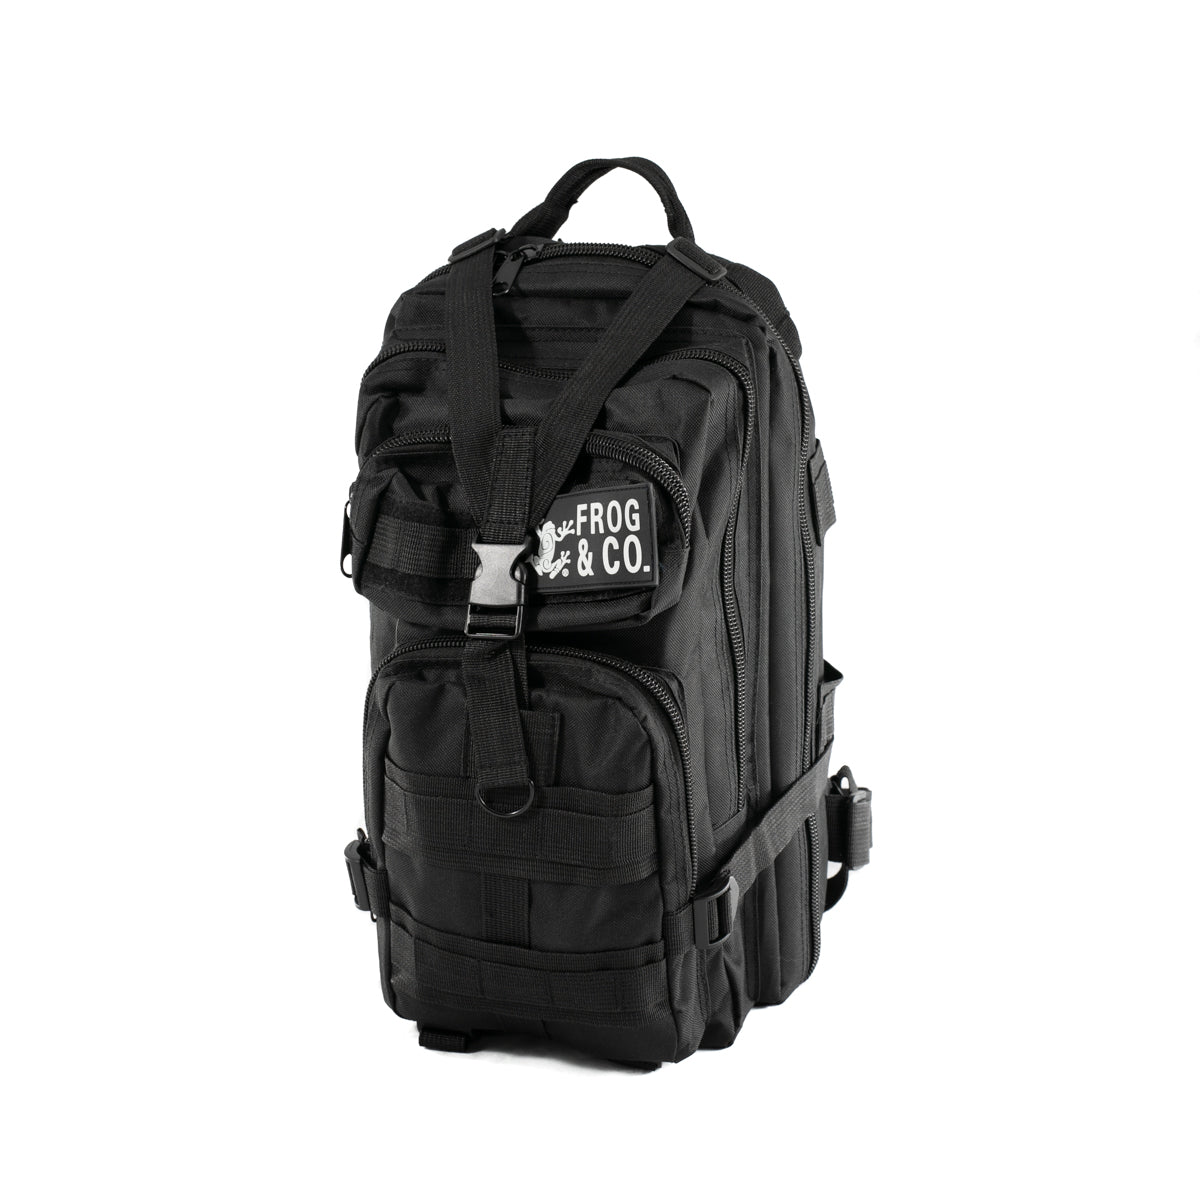 Water Resistant Tactical Backpack By Frog & Co. / Black